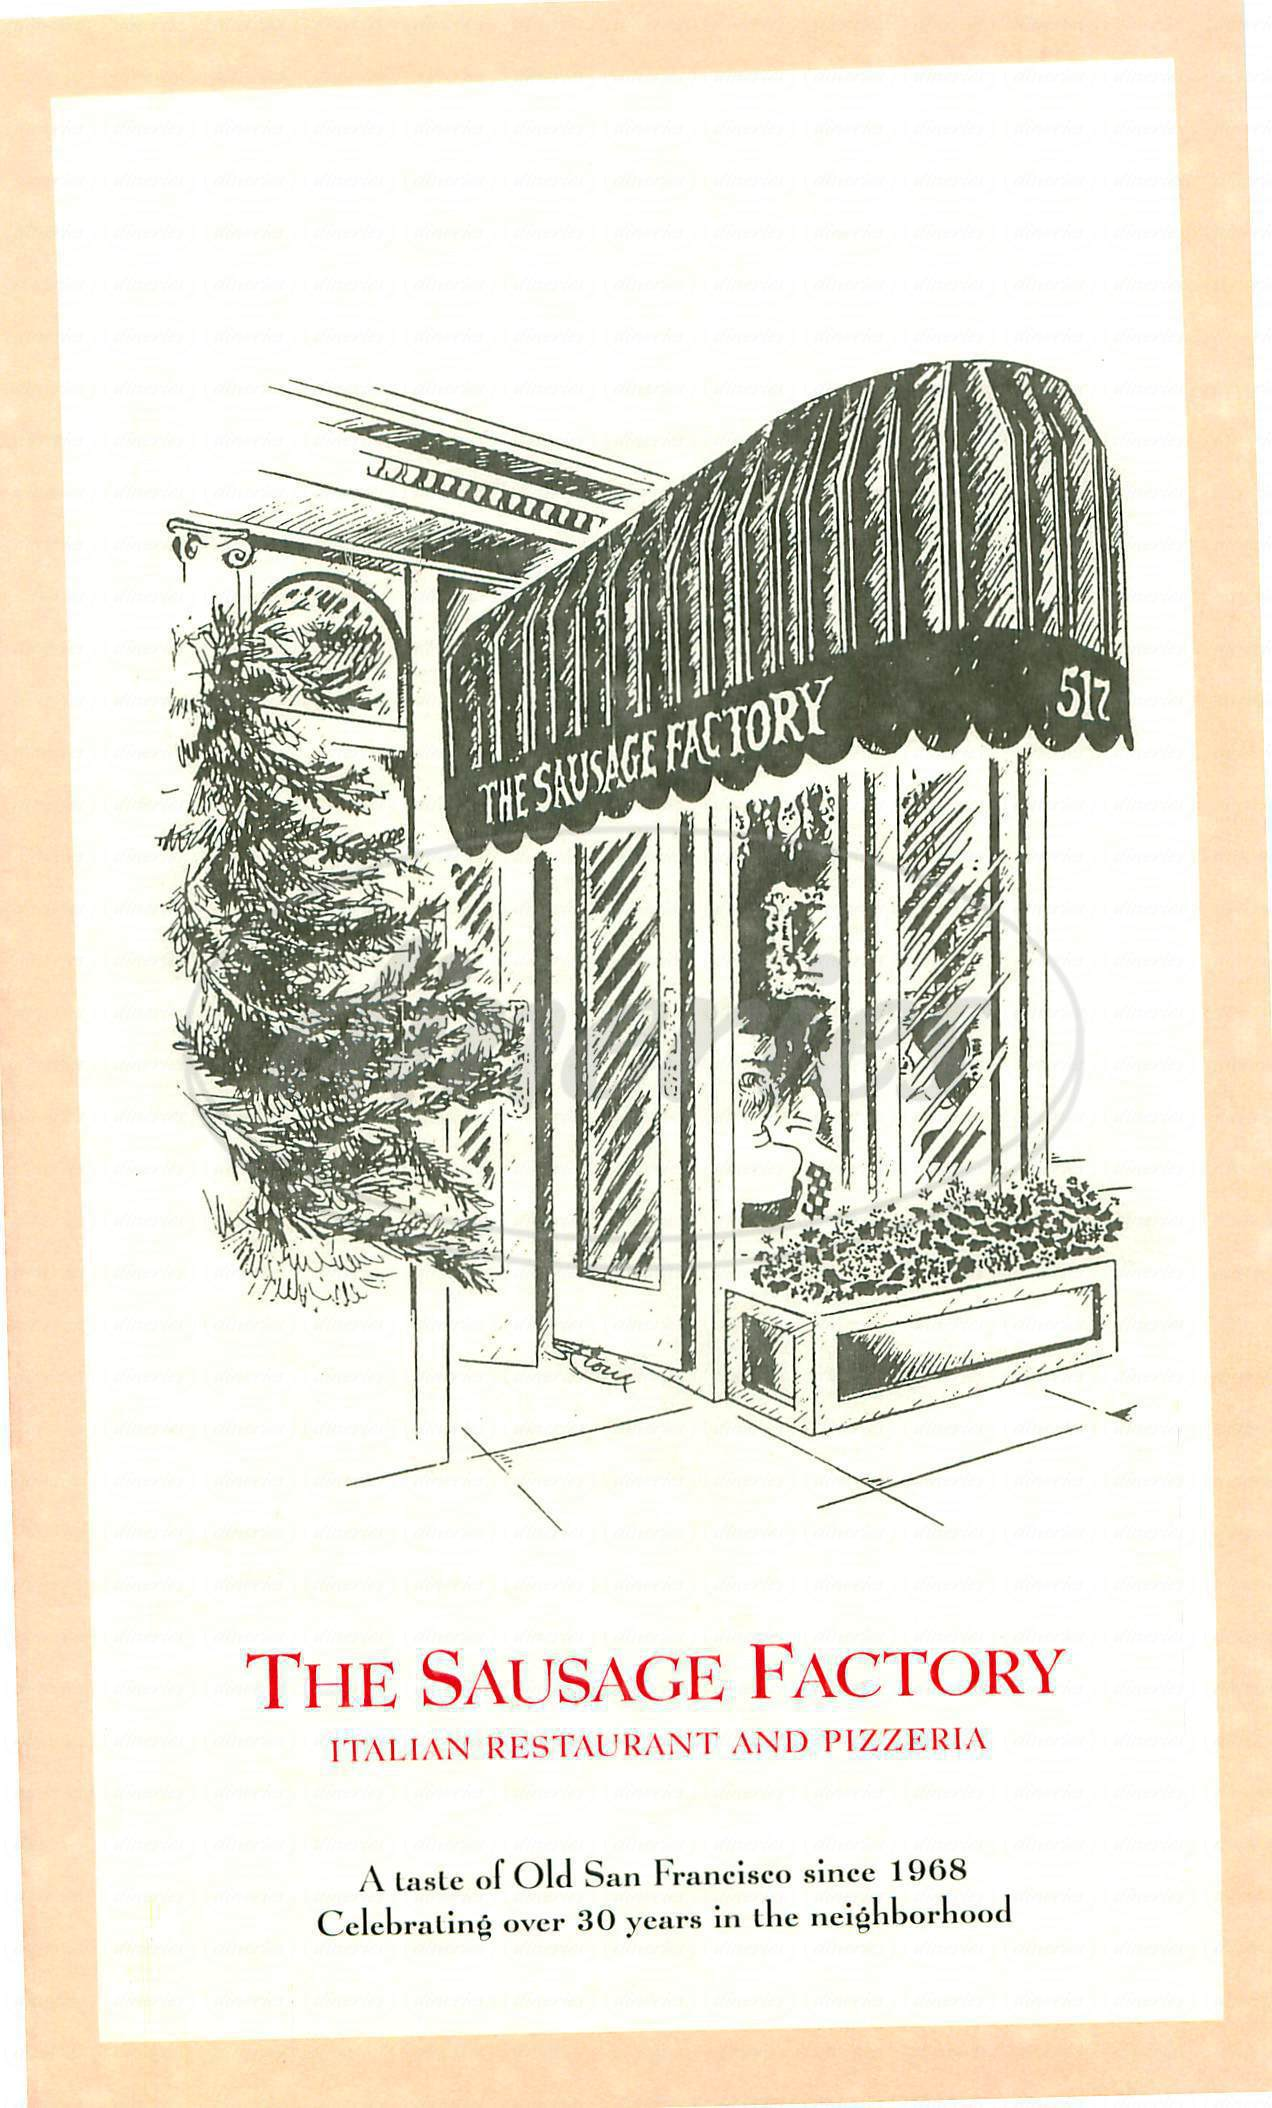 menu for The Sausage Factory